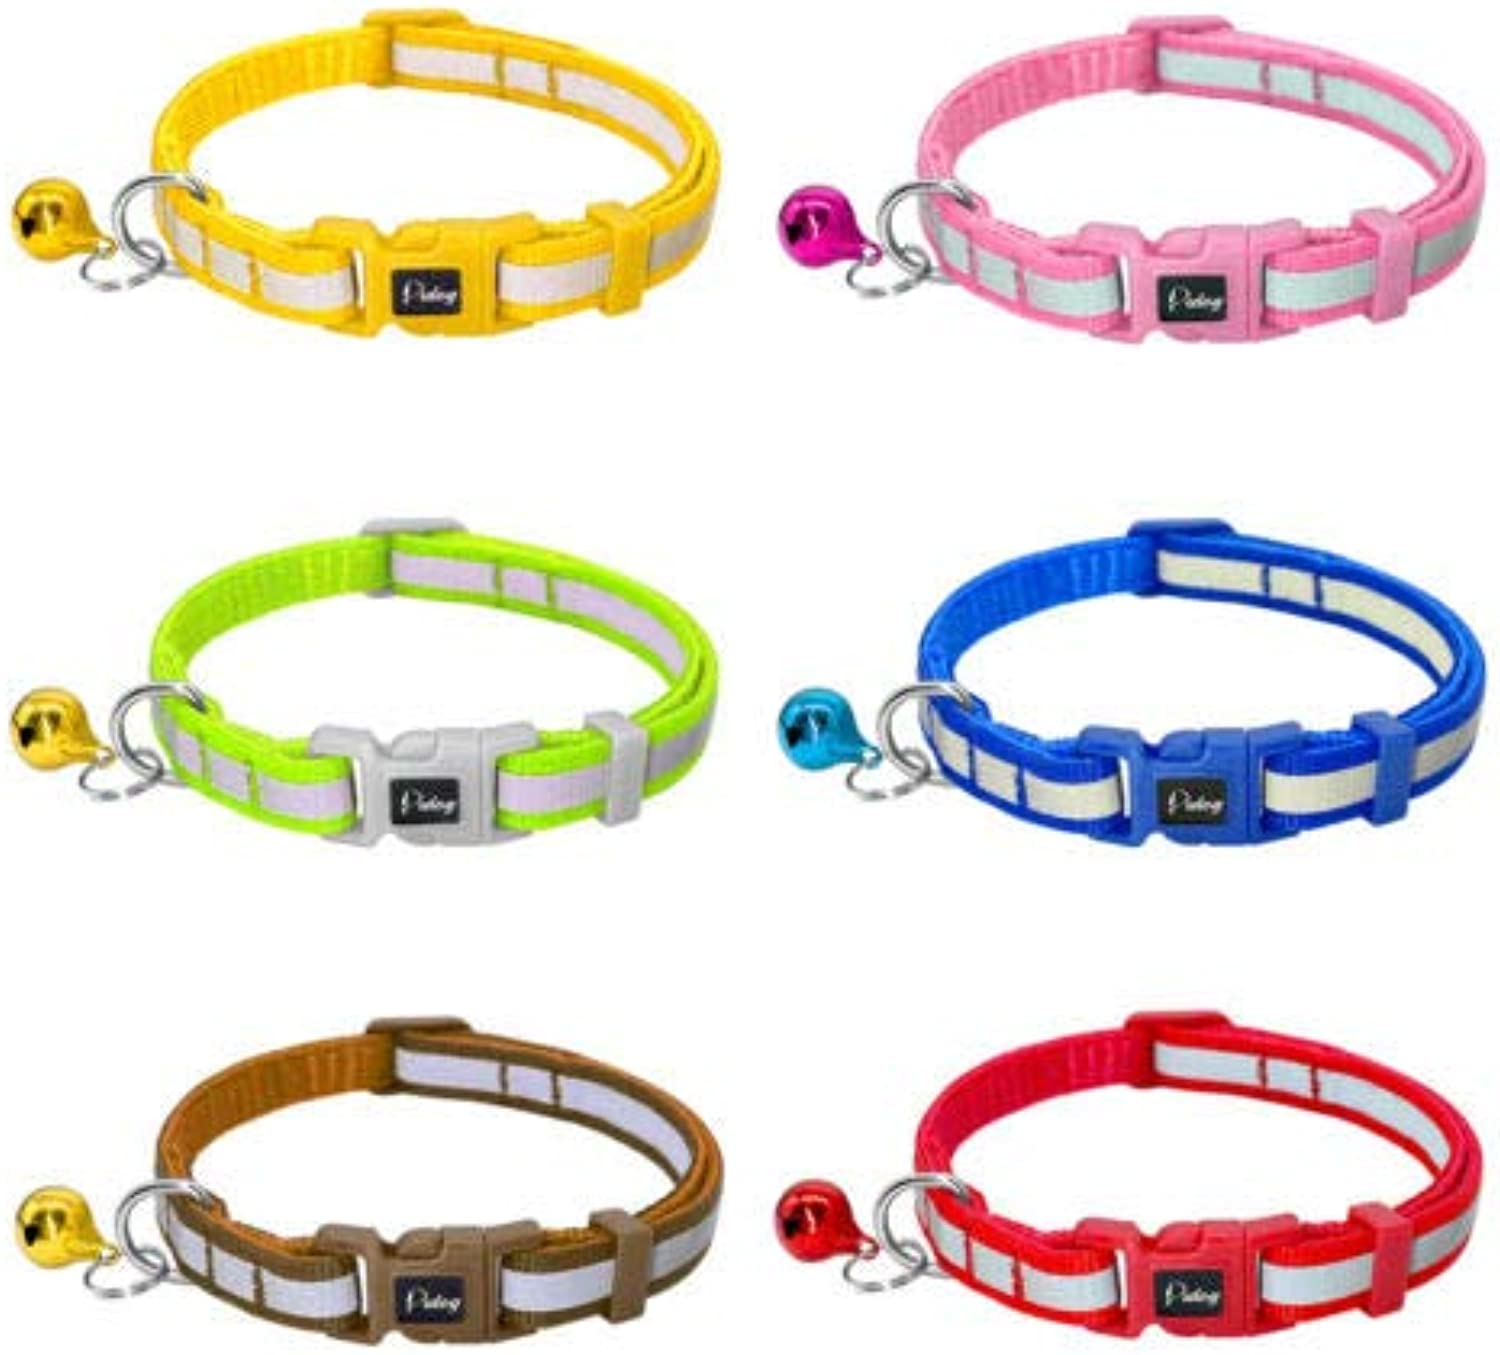 FidgetGear 6 12 18pcs Reflective Small Dog Cat Collar with Bell Soft for Puppy Kitty Kitten Mixed color 18pcs